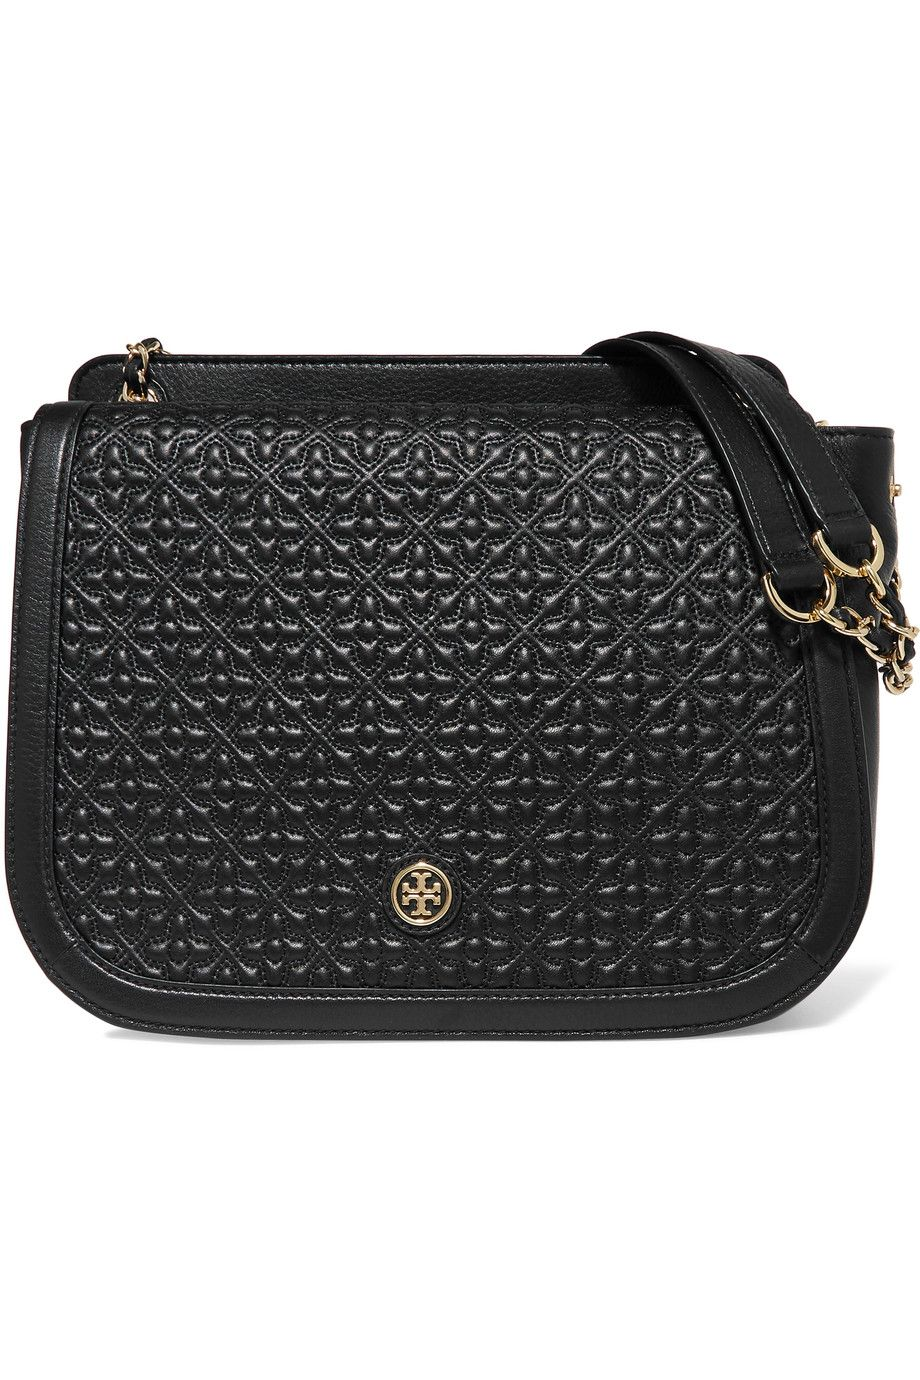 0838a0700e6f TORY BURCH Bryant quilted and textured-leather shoulder bag.  toryburch   bags  shoulder bags  leather